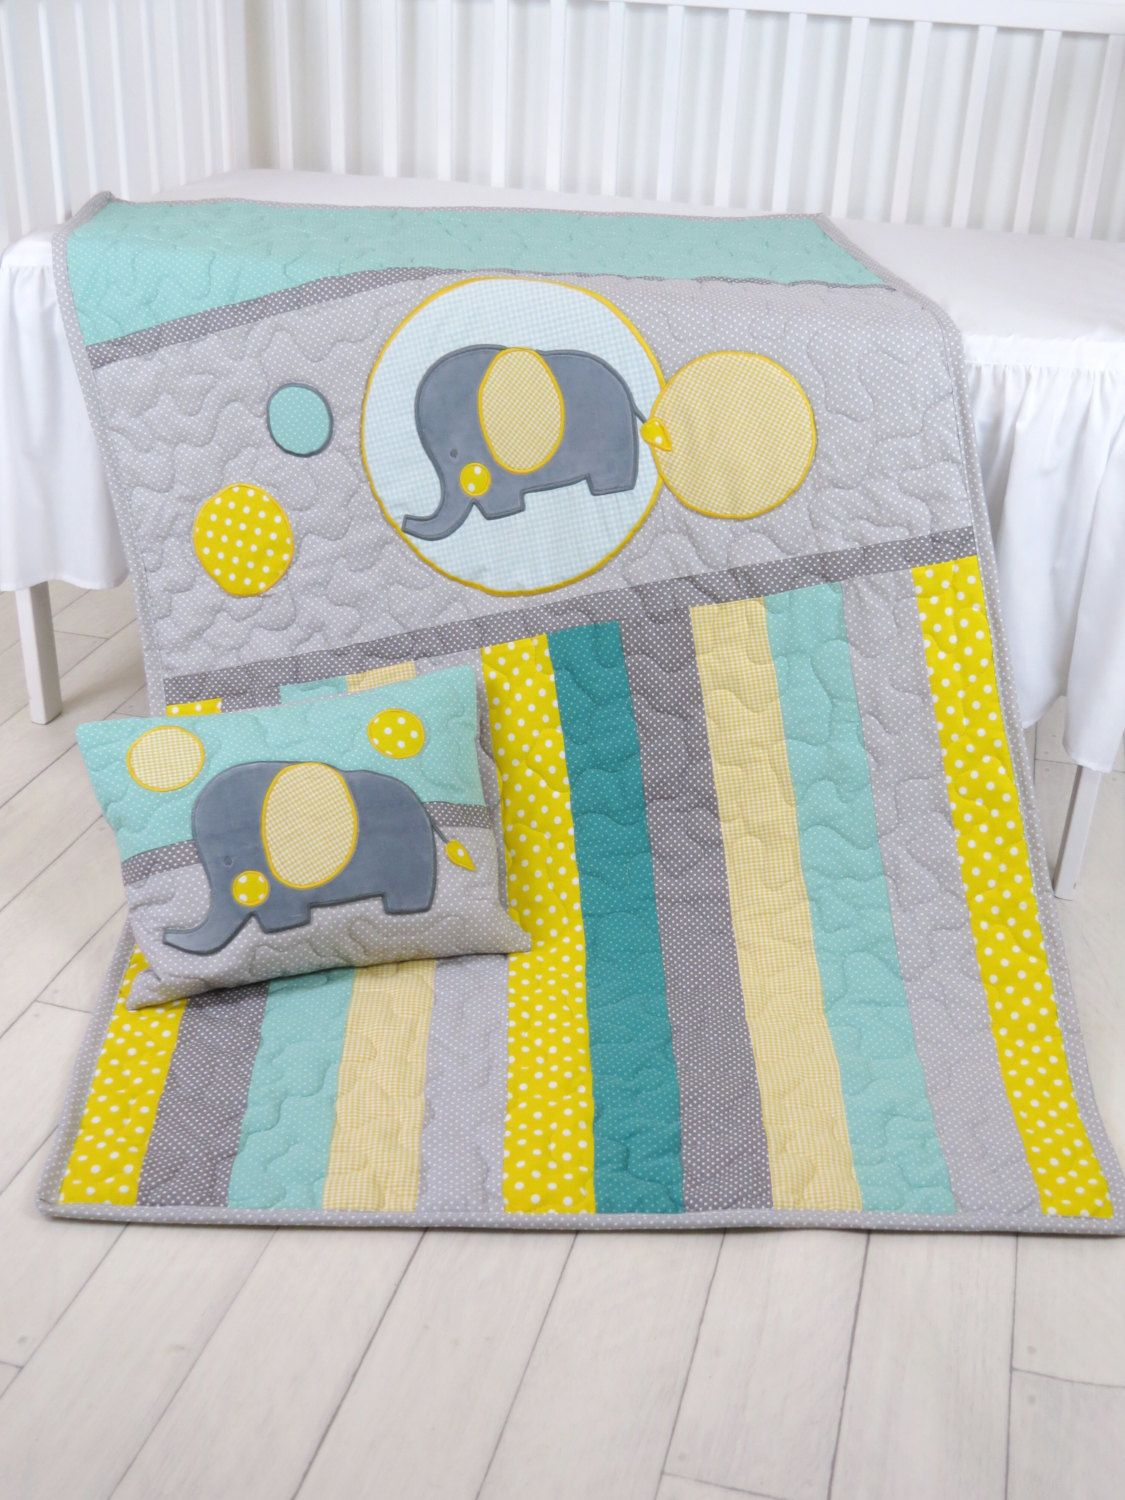 Baby Blanket Teal Gray Crib Quilt Elephant Bedding For